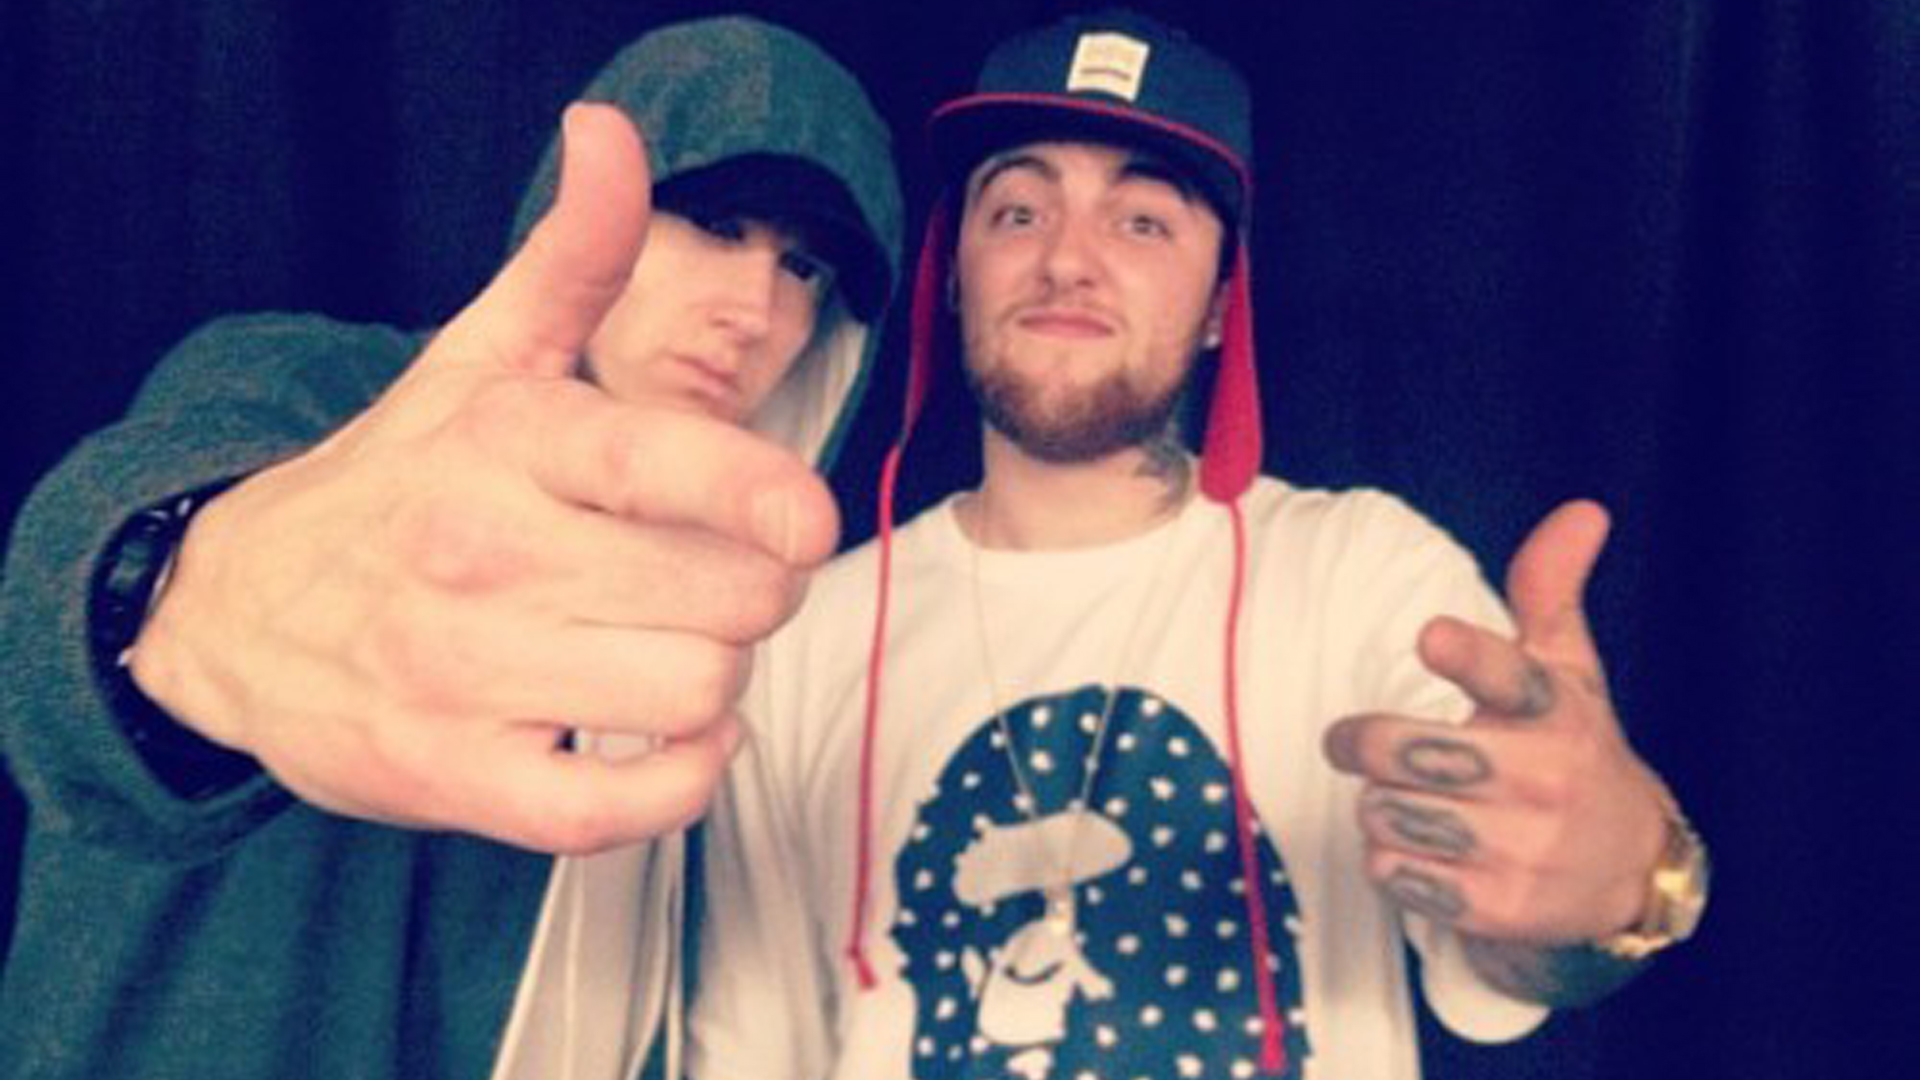 Eminem and Mac Miller